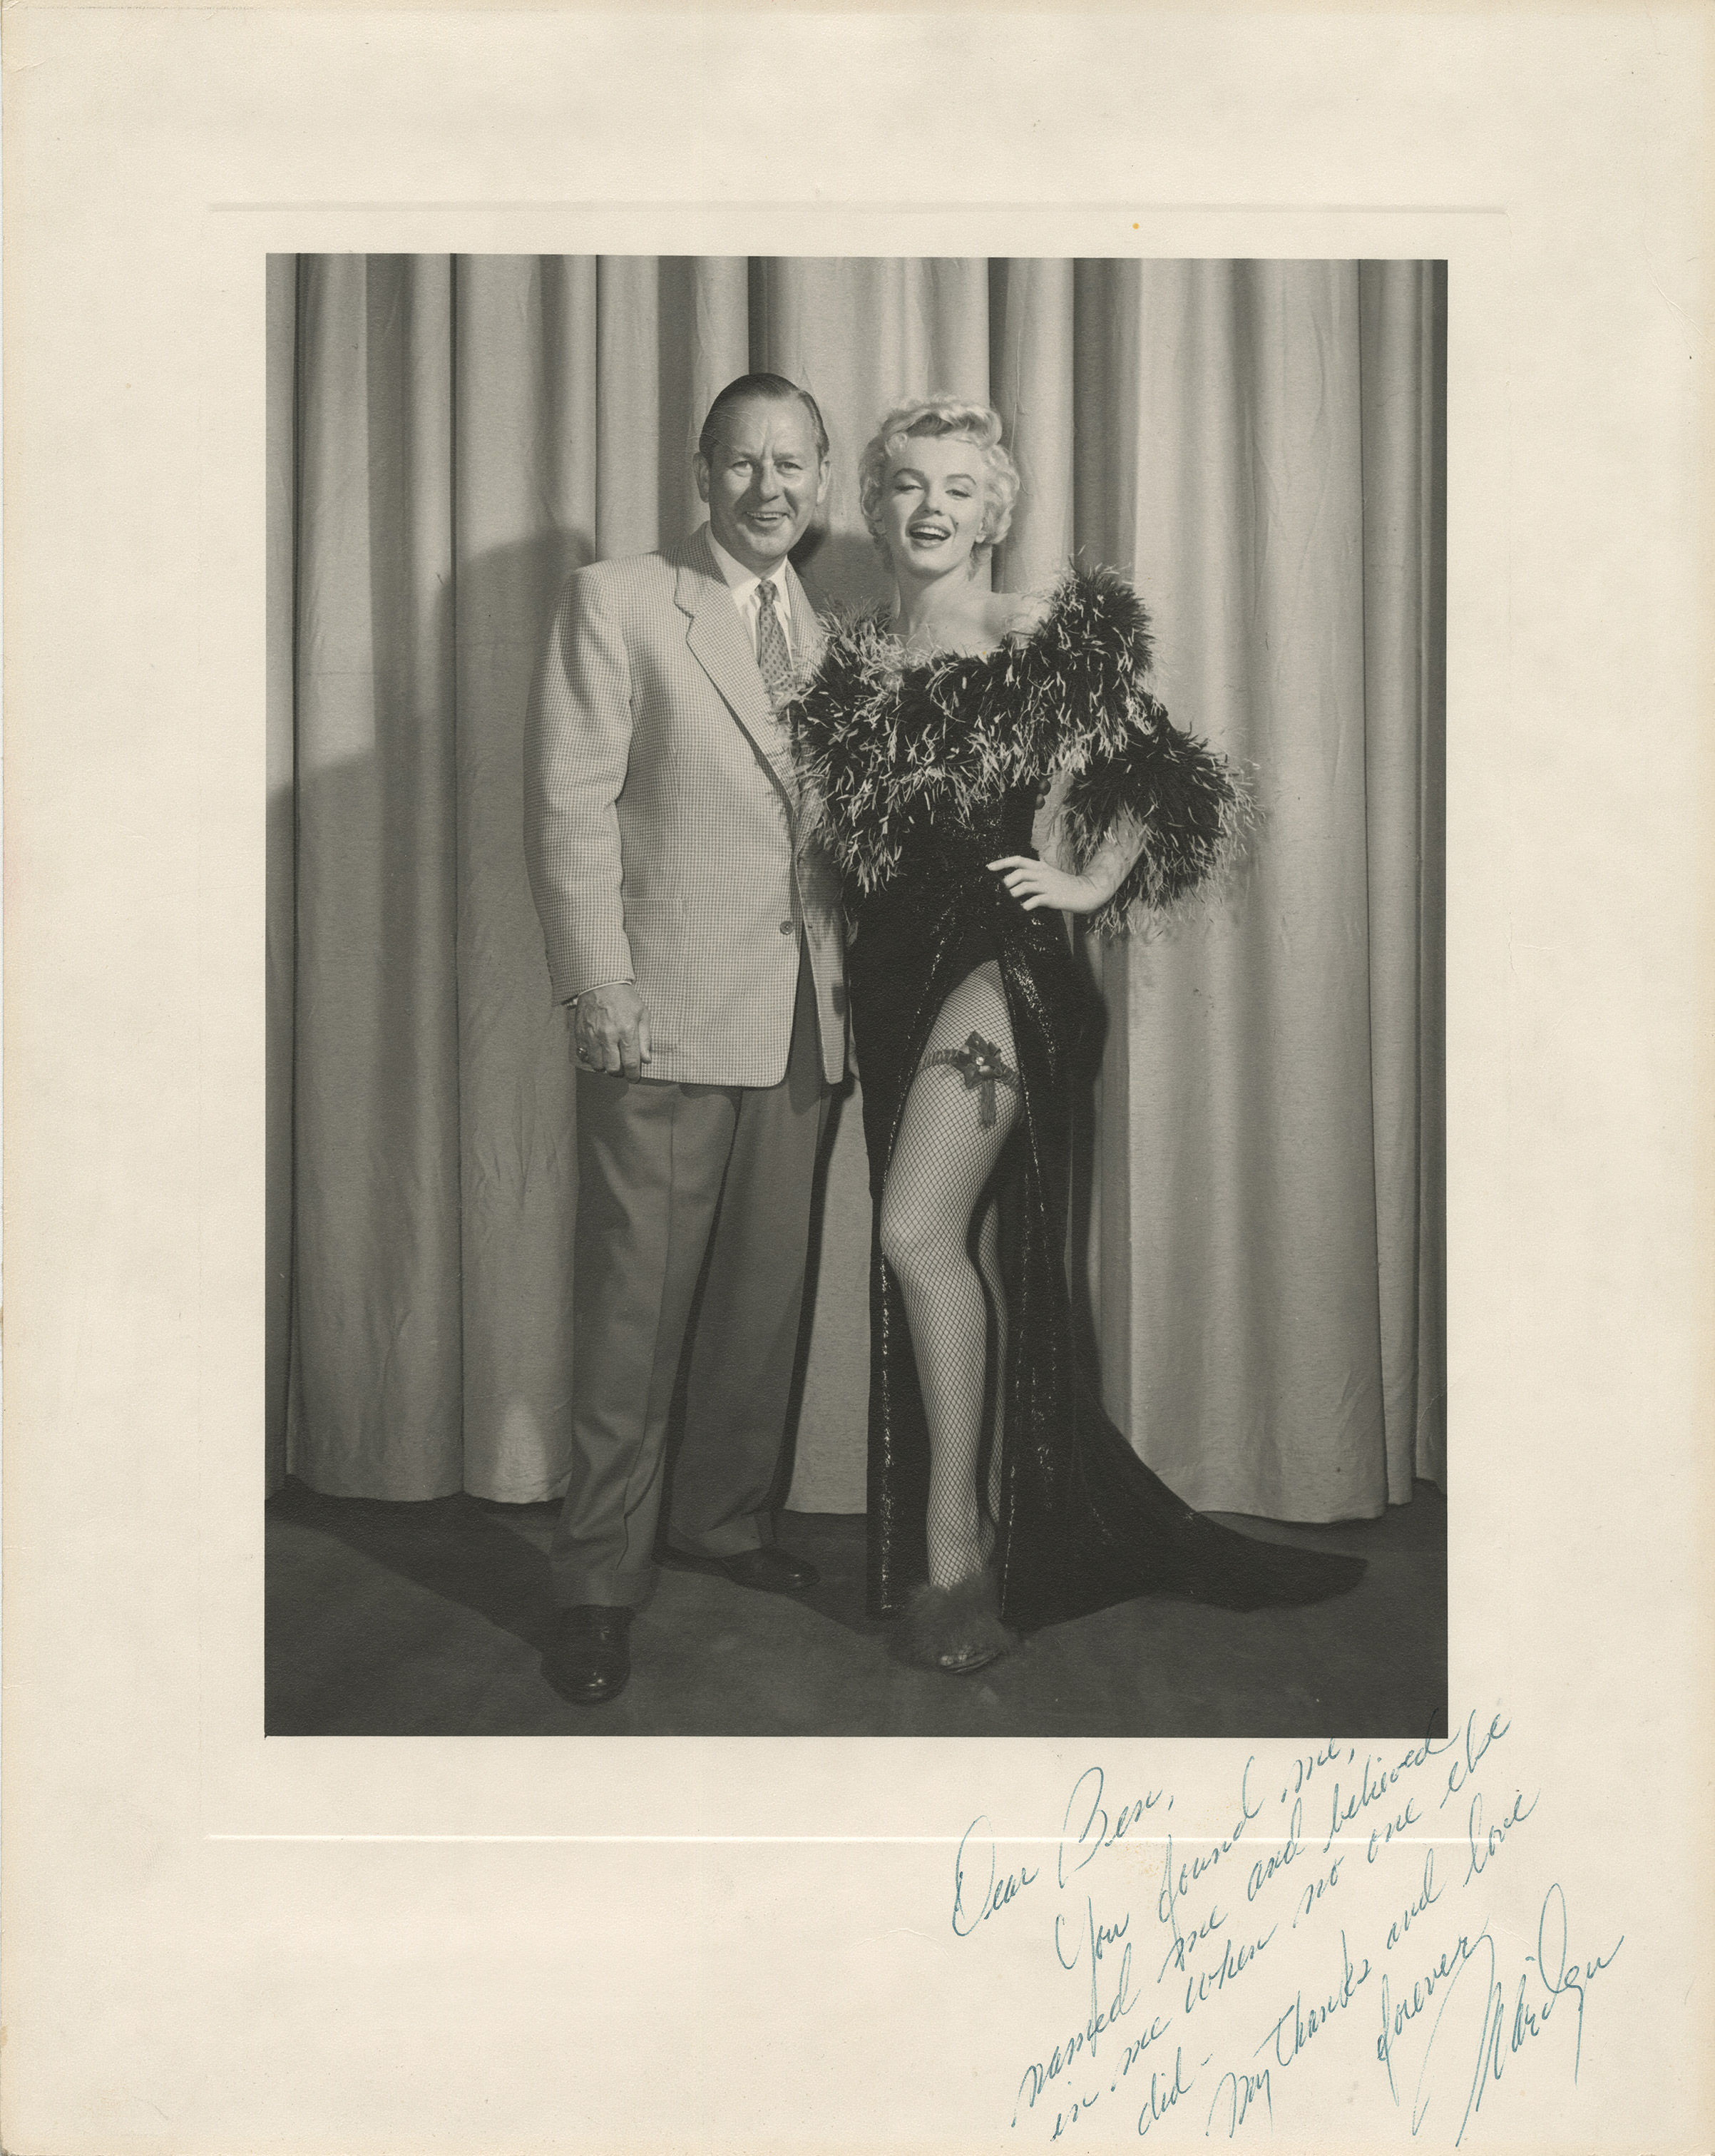 An autographed photograph of Marilyn Monroe and Ben Lyon